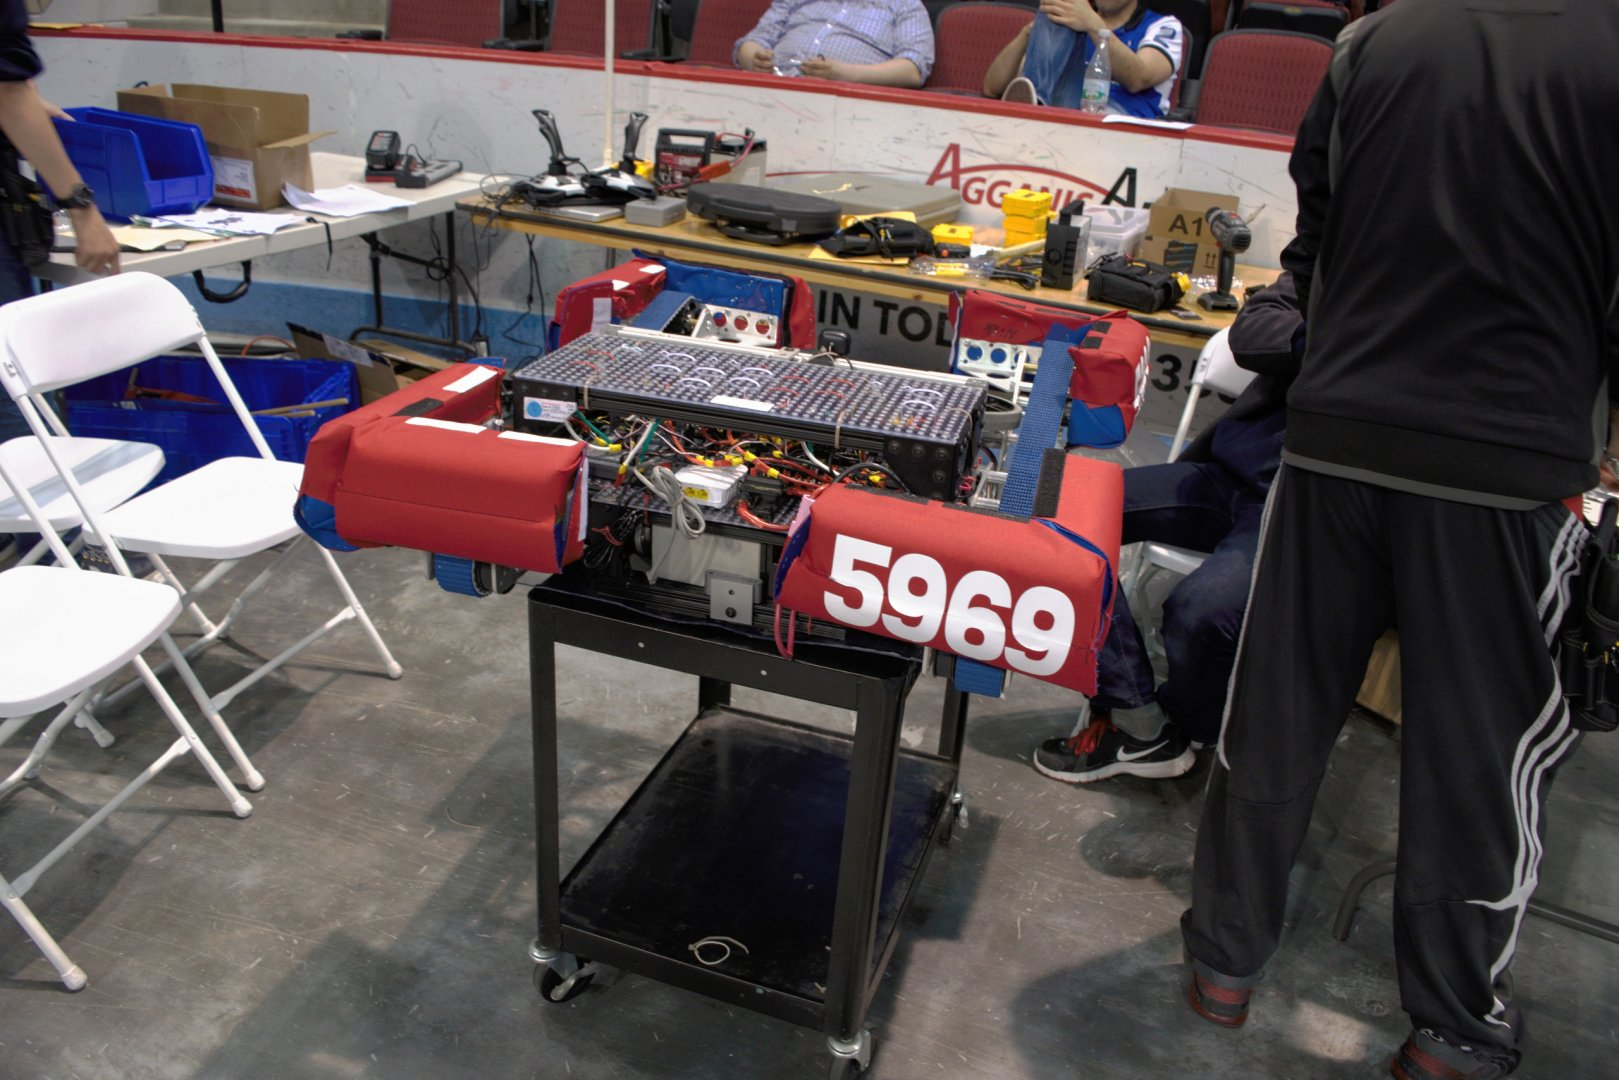 044.Boston FIRST Robotics Competition 04-03-2016.jpg